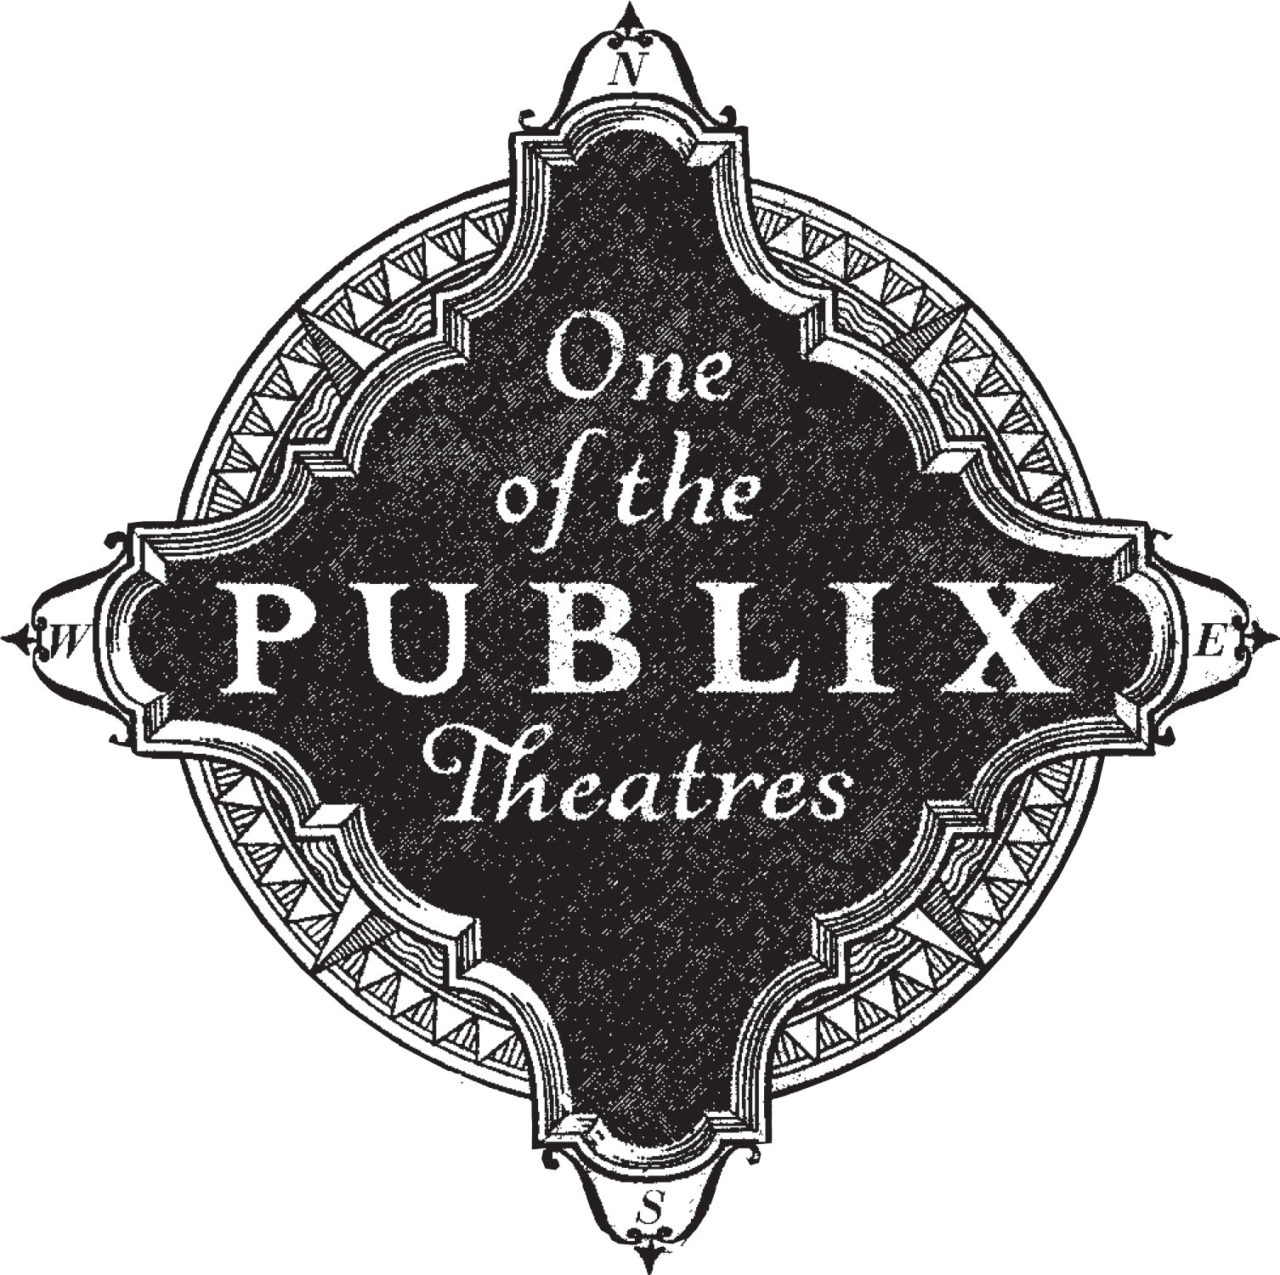 Publix logo - Carolina Theatre was part of the Publix Theatres chain